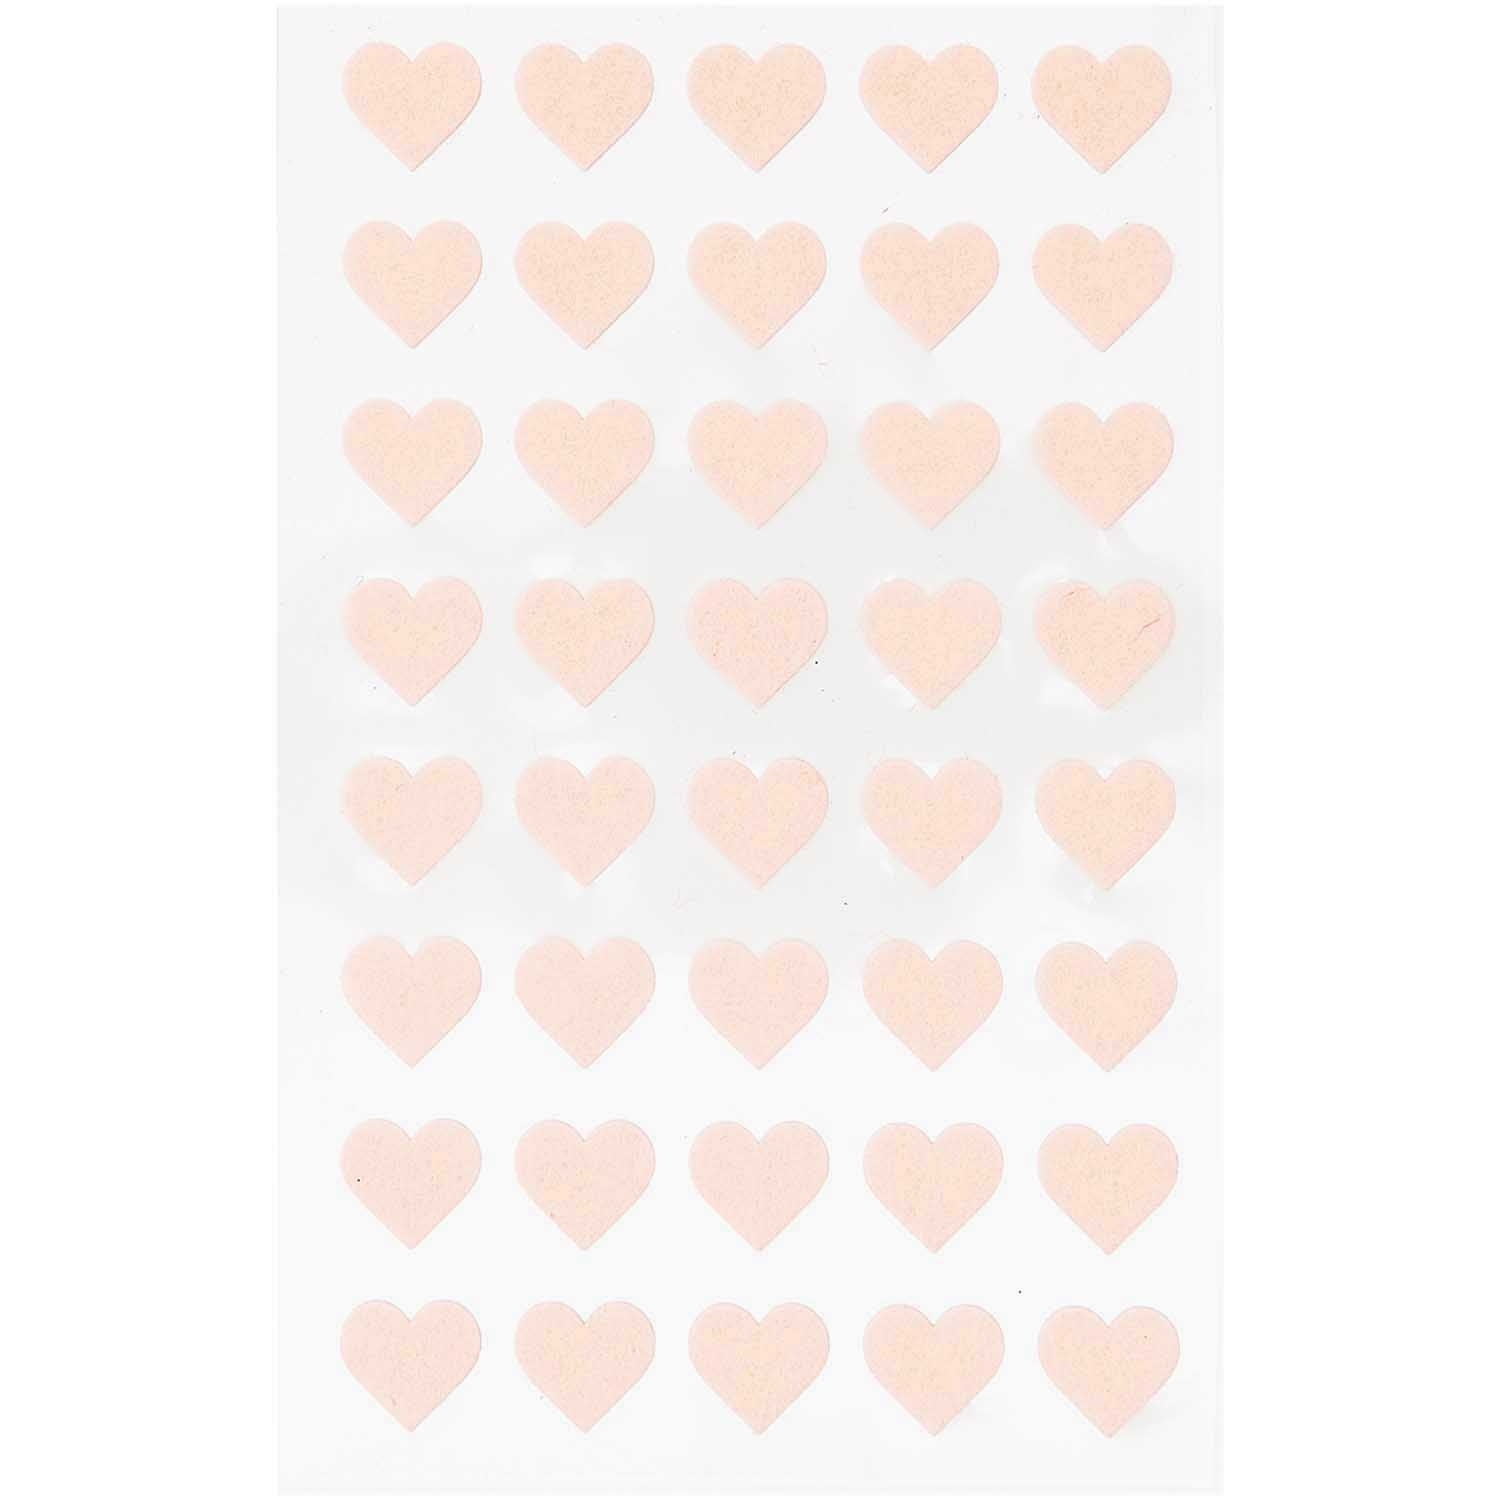 Rico NAY FELT STICKERS, HEARTS SMALL, POWDER 1 SHEET